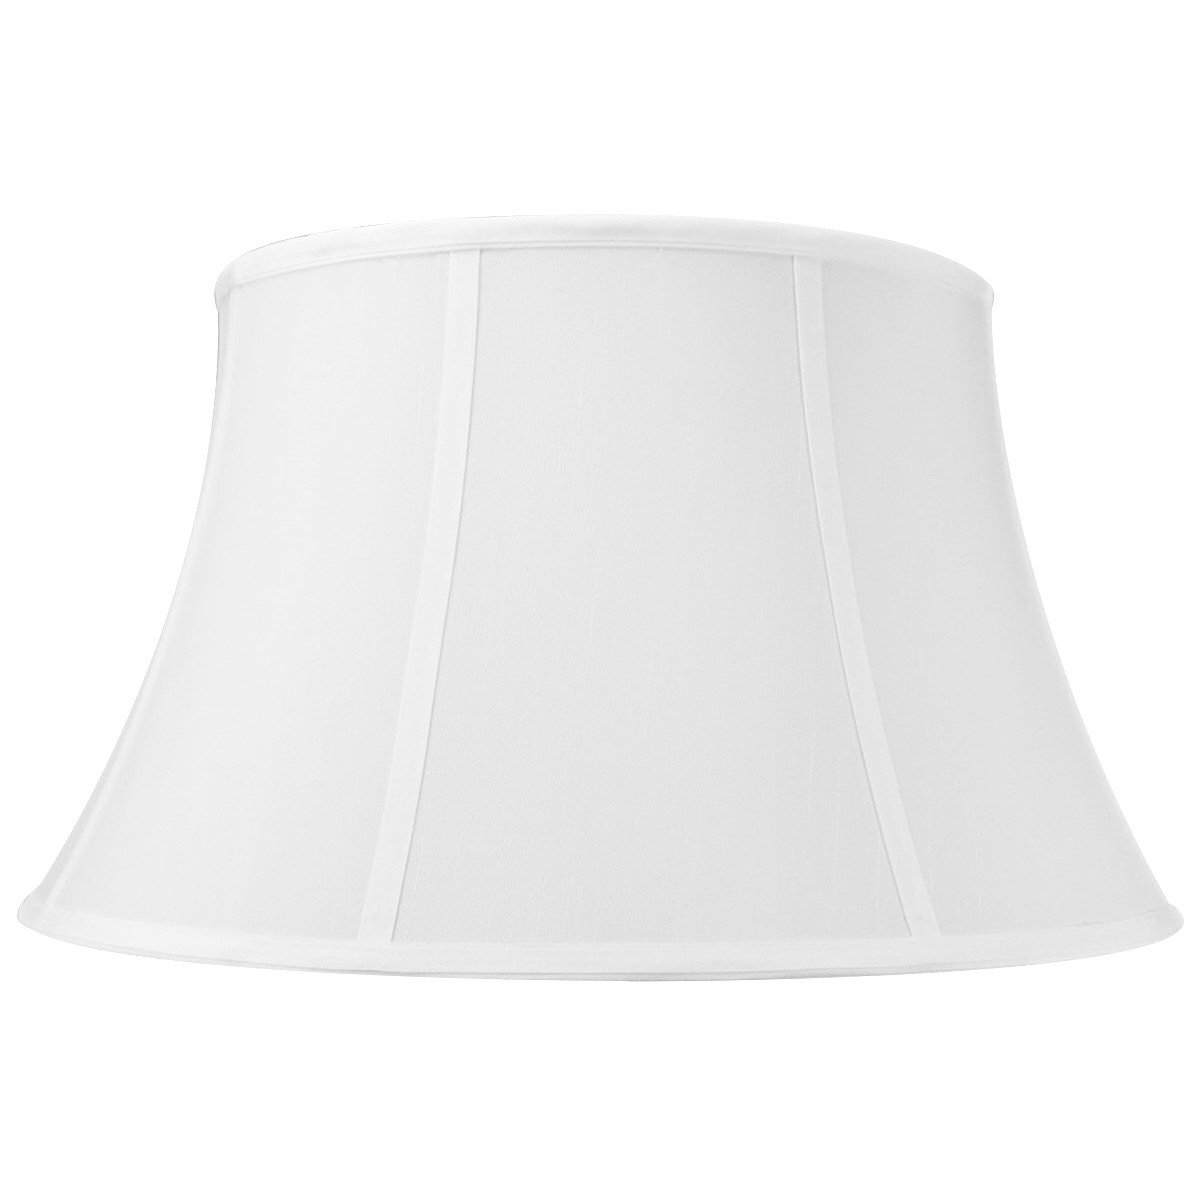 13x19x11 White Floor Shantung Lampshade with Brass Spider fitter By Home Concept - Perfect for table and Desk lamps - Large, White